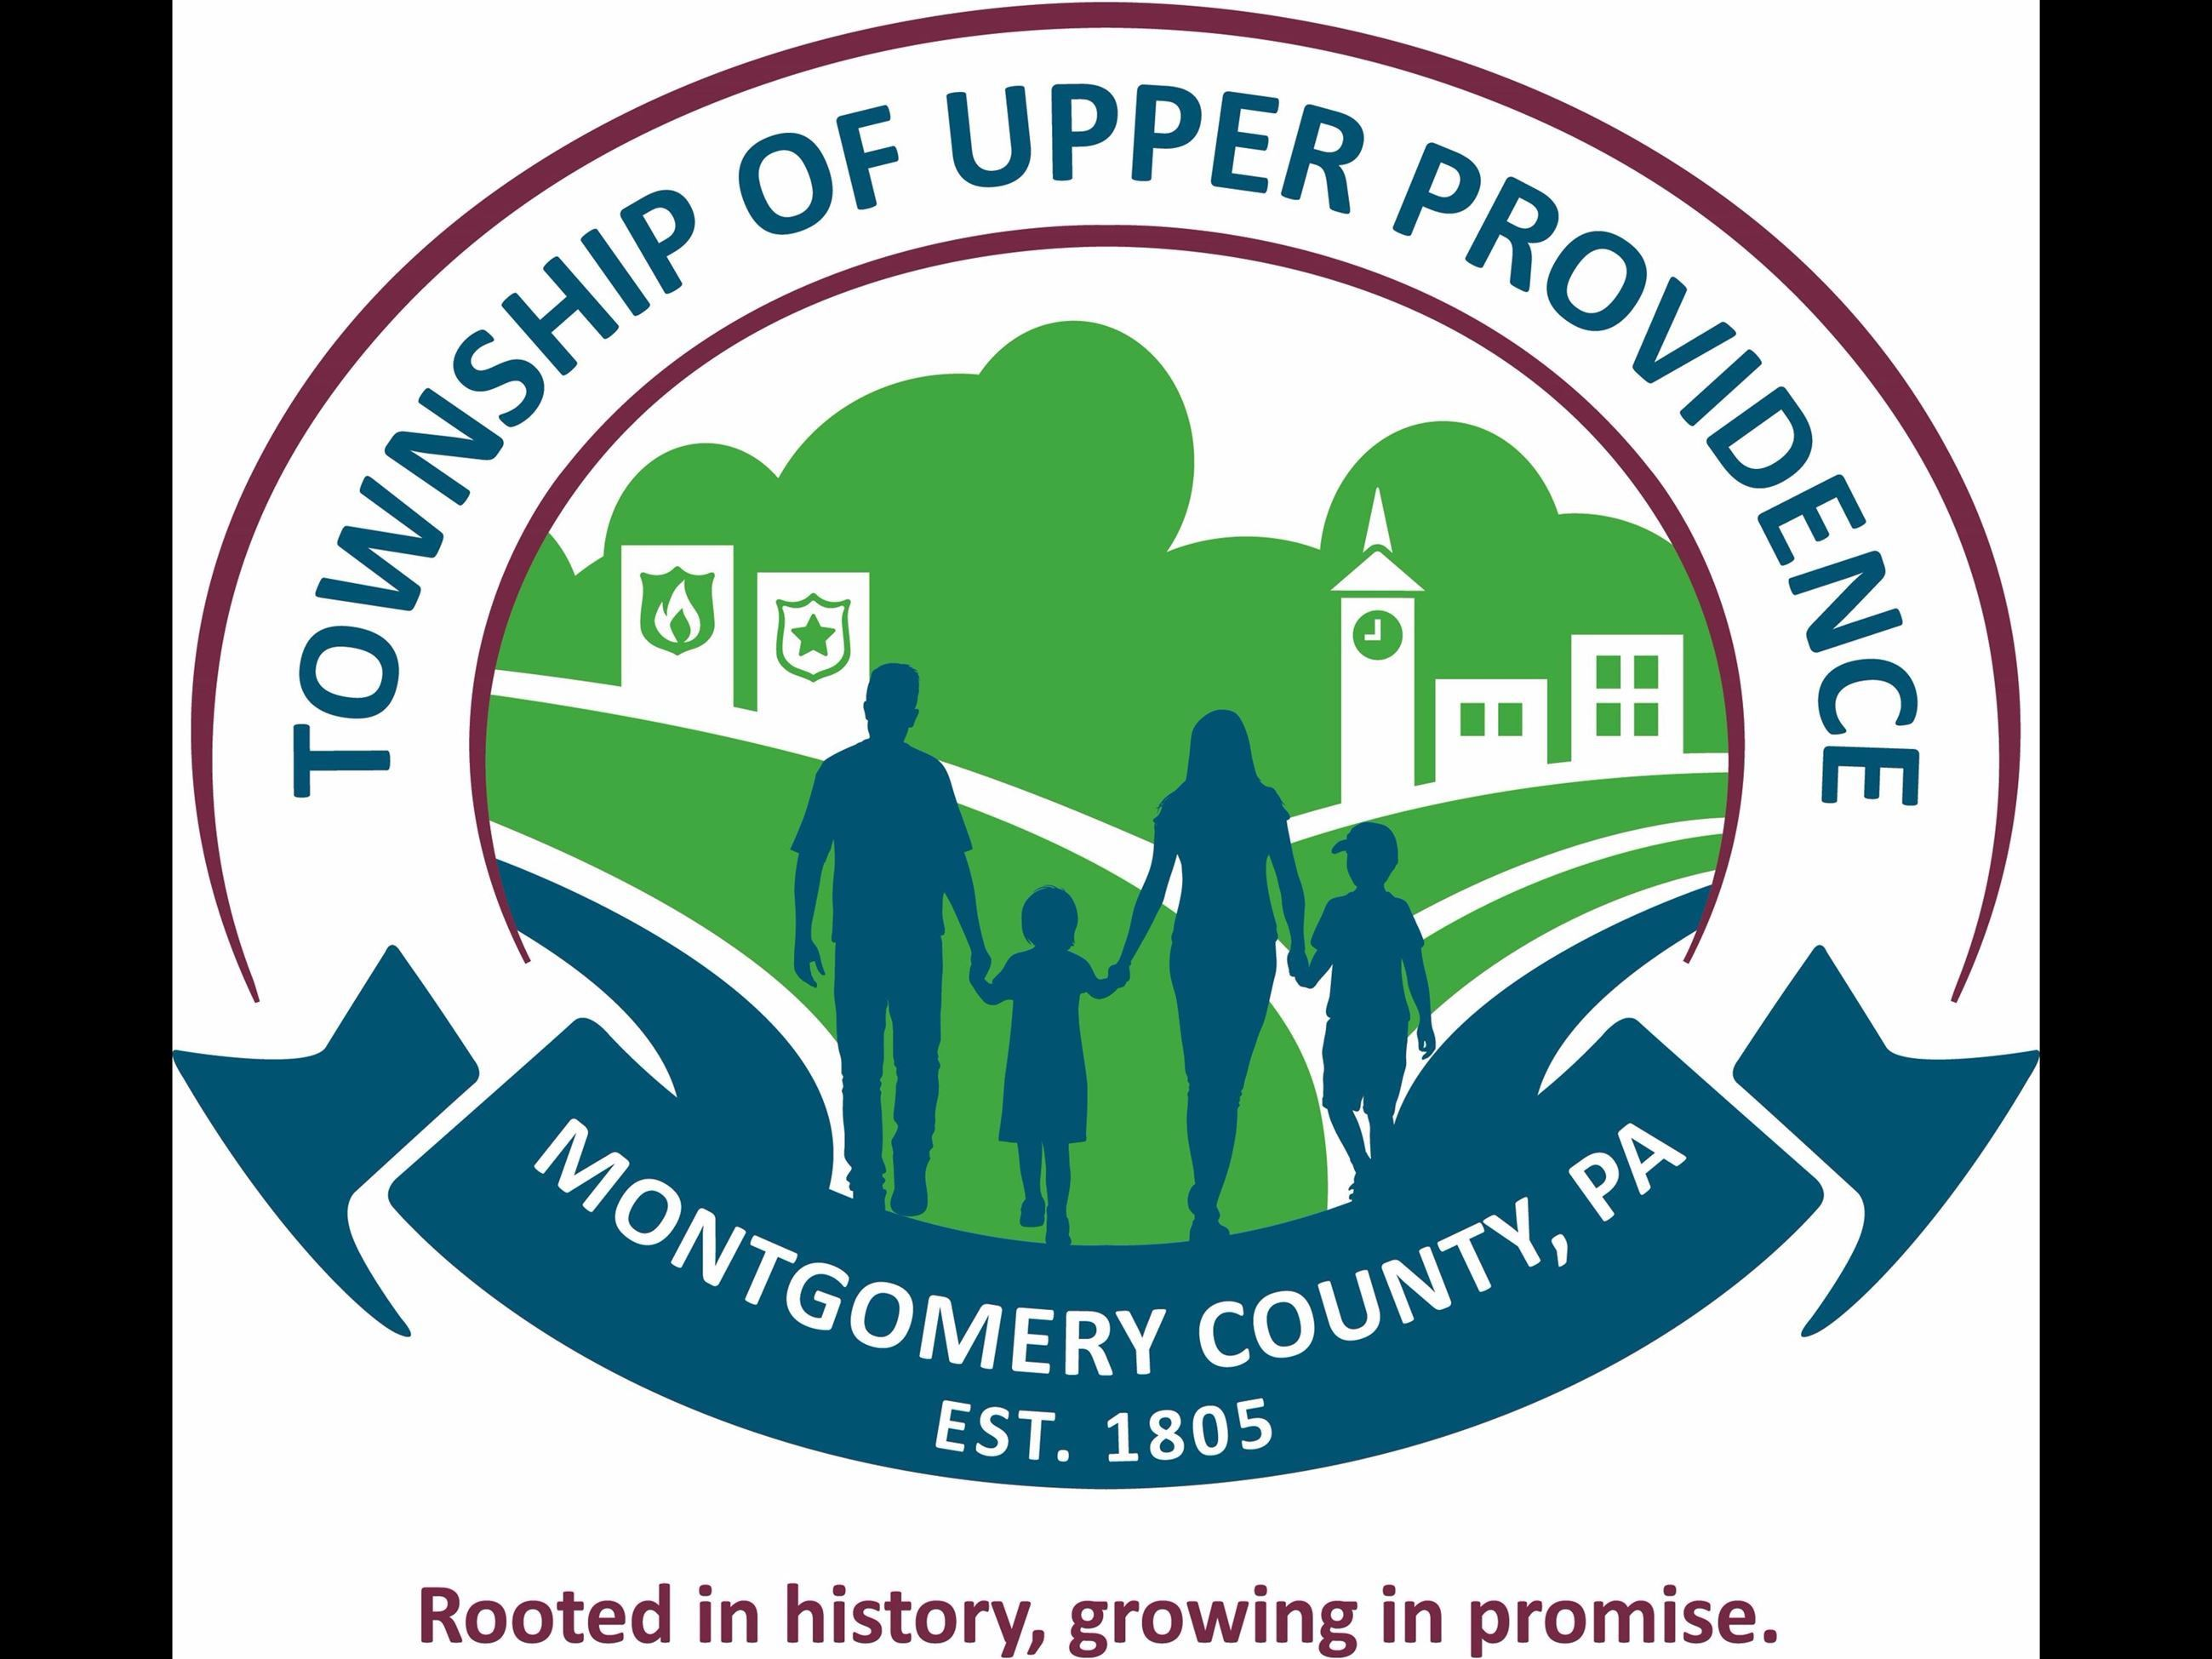 Upper-Providence-Montgomery-Co-PA-Est1805-Seal-Tagline-CMYK-Large